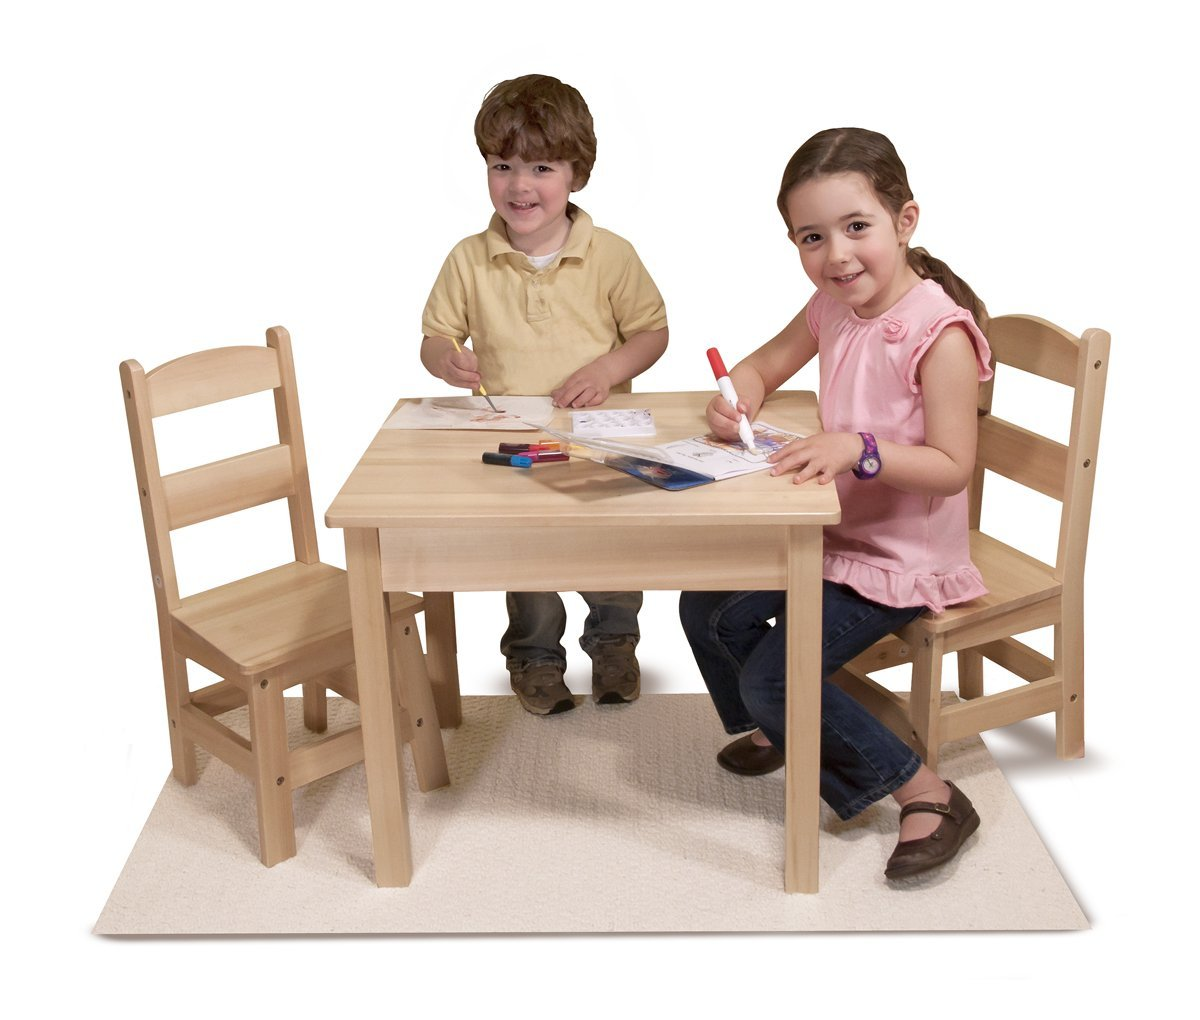 Melissa and Doug Wooden Kids Table $69 99 Save $60